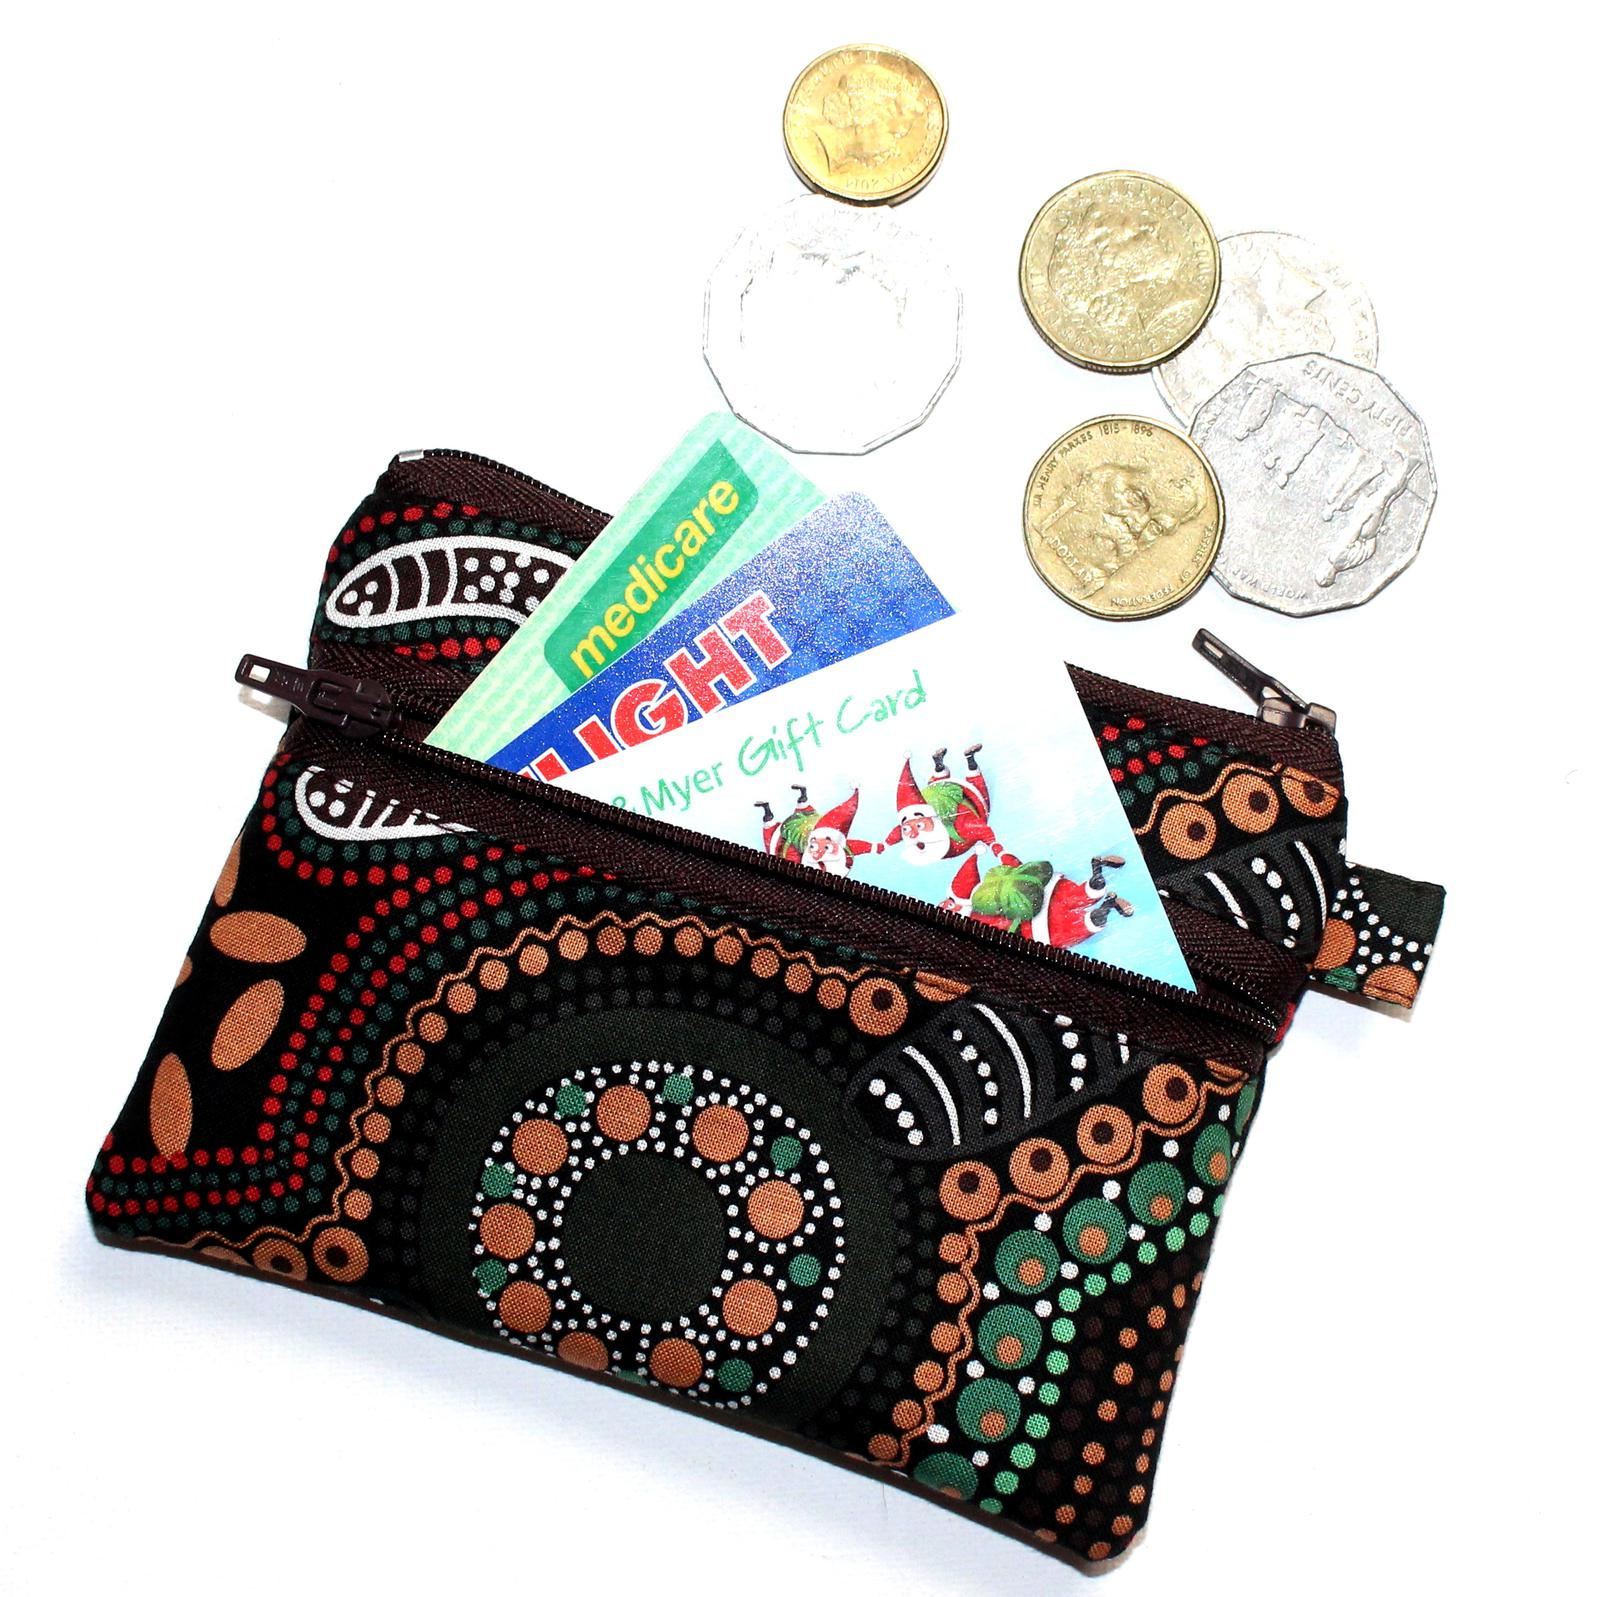 Coin Purses with Two Compartments